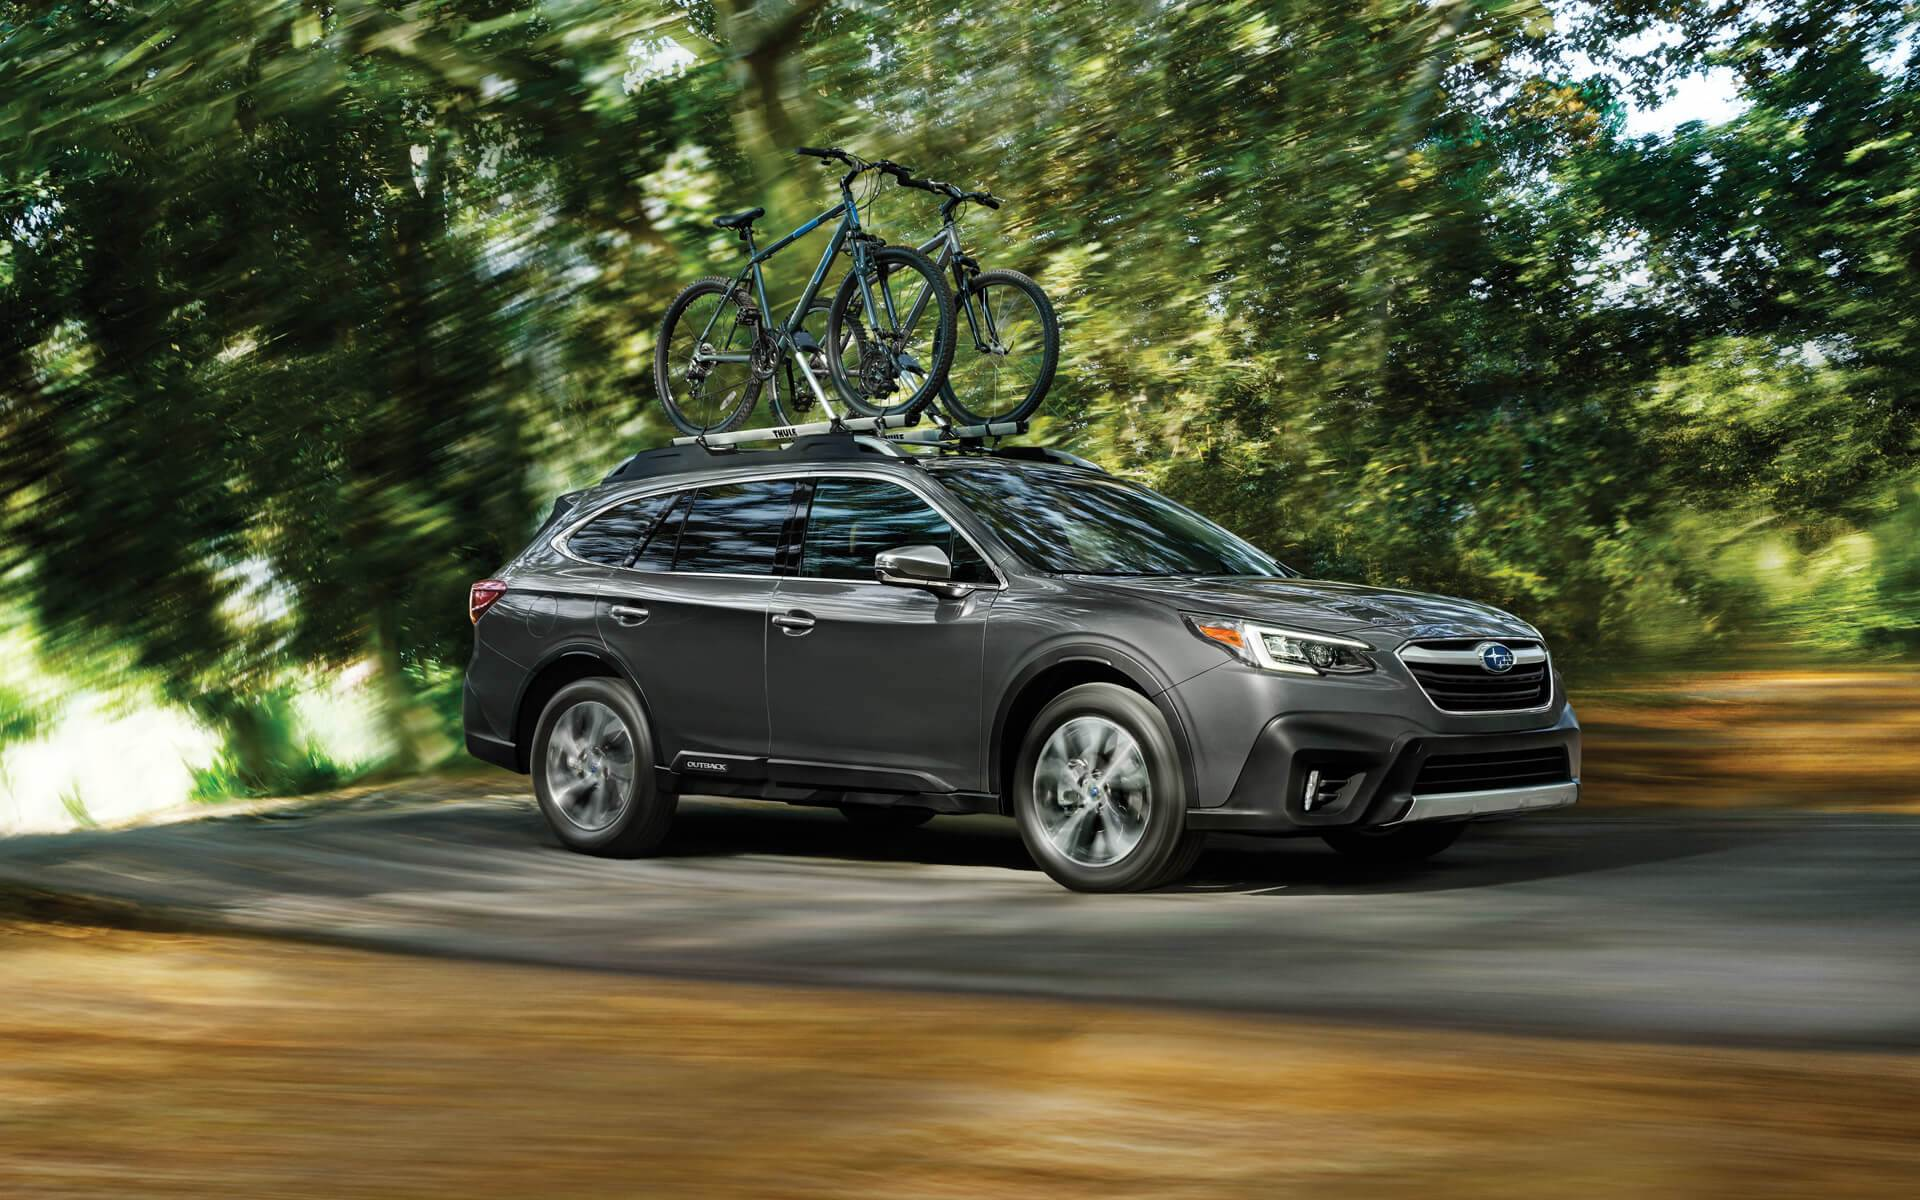 Test Drive the 2020 Subaru Outback in Boulder CO